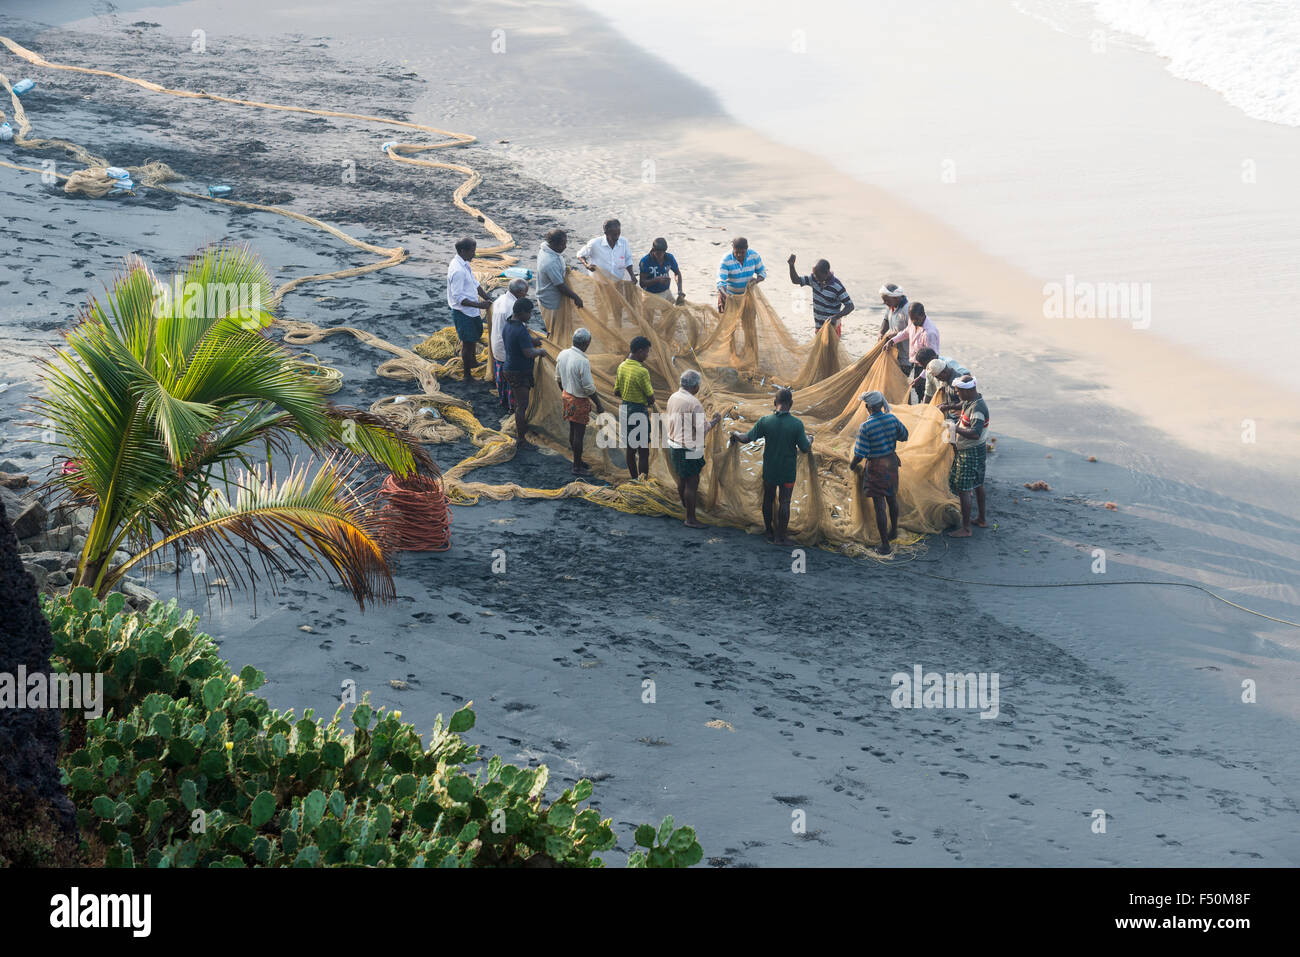 A group of fishermen is inspecting the fishing nets after pulling them out onto the beach - Stock Image